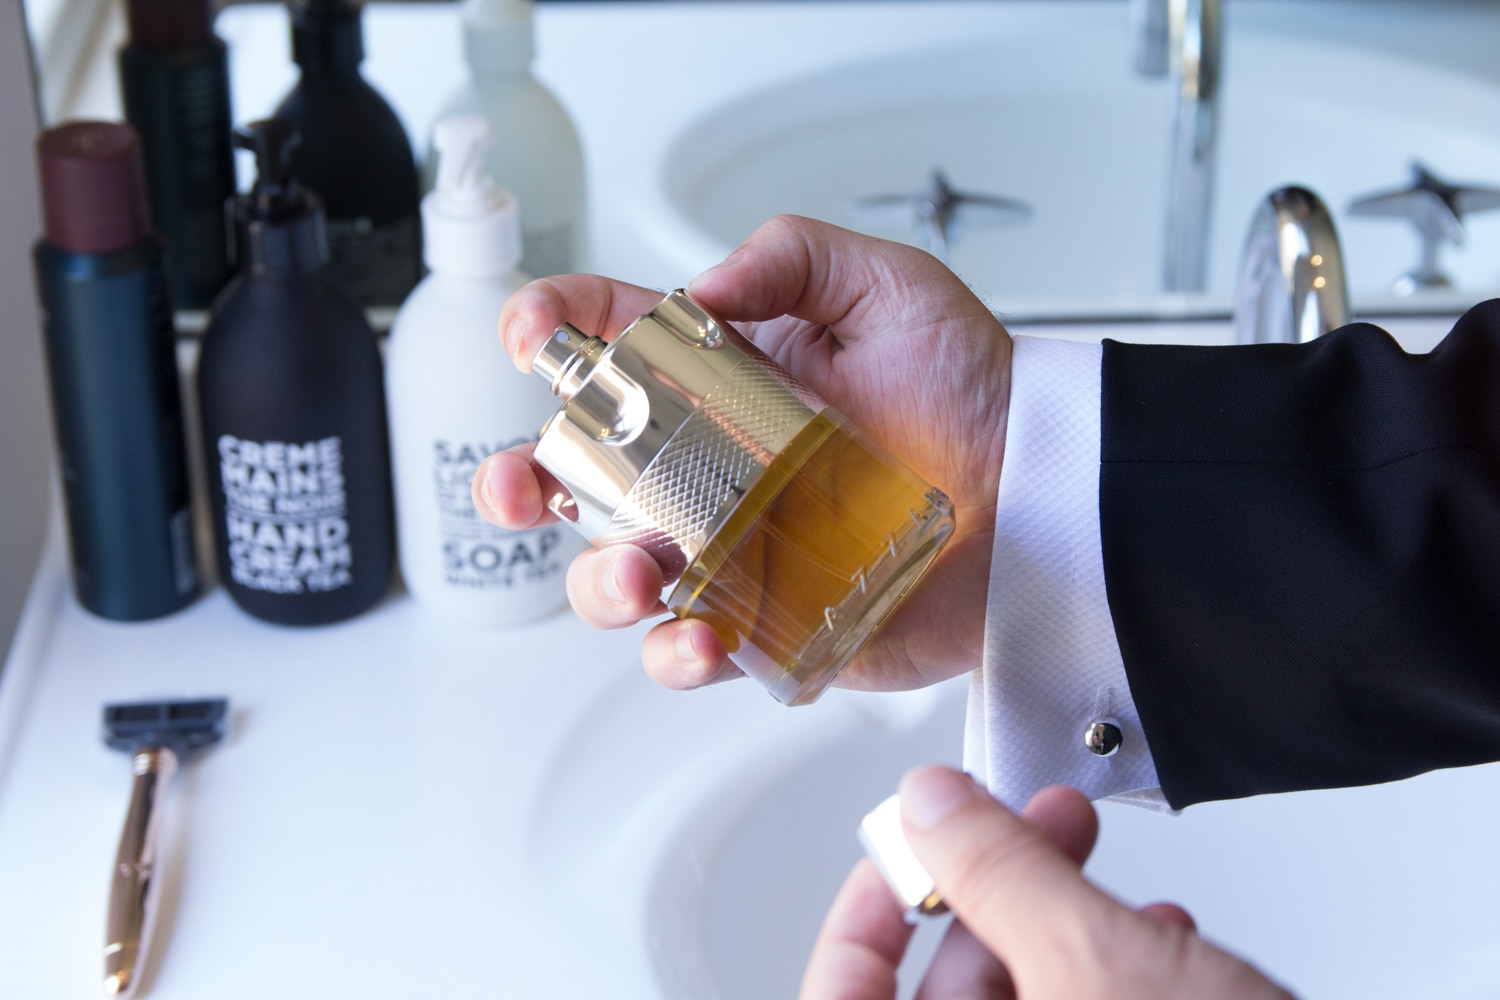 azzaro wanted fragrance bottle in the hand